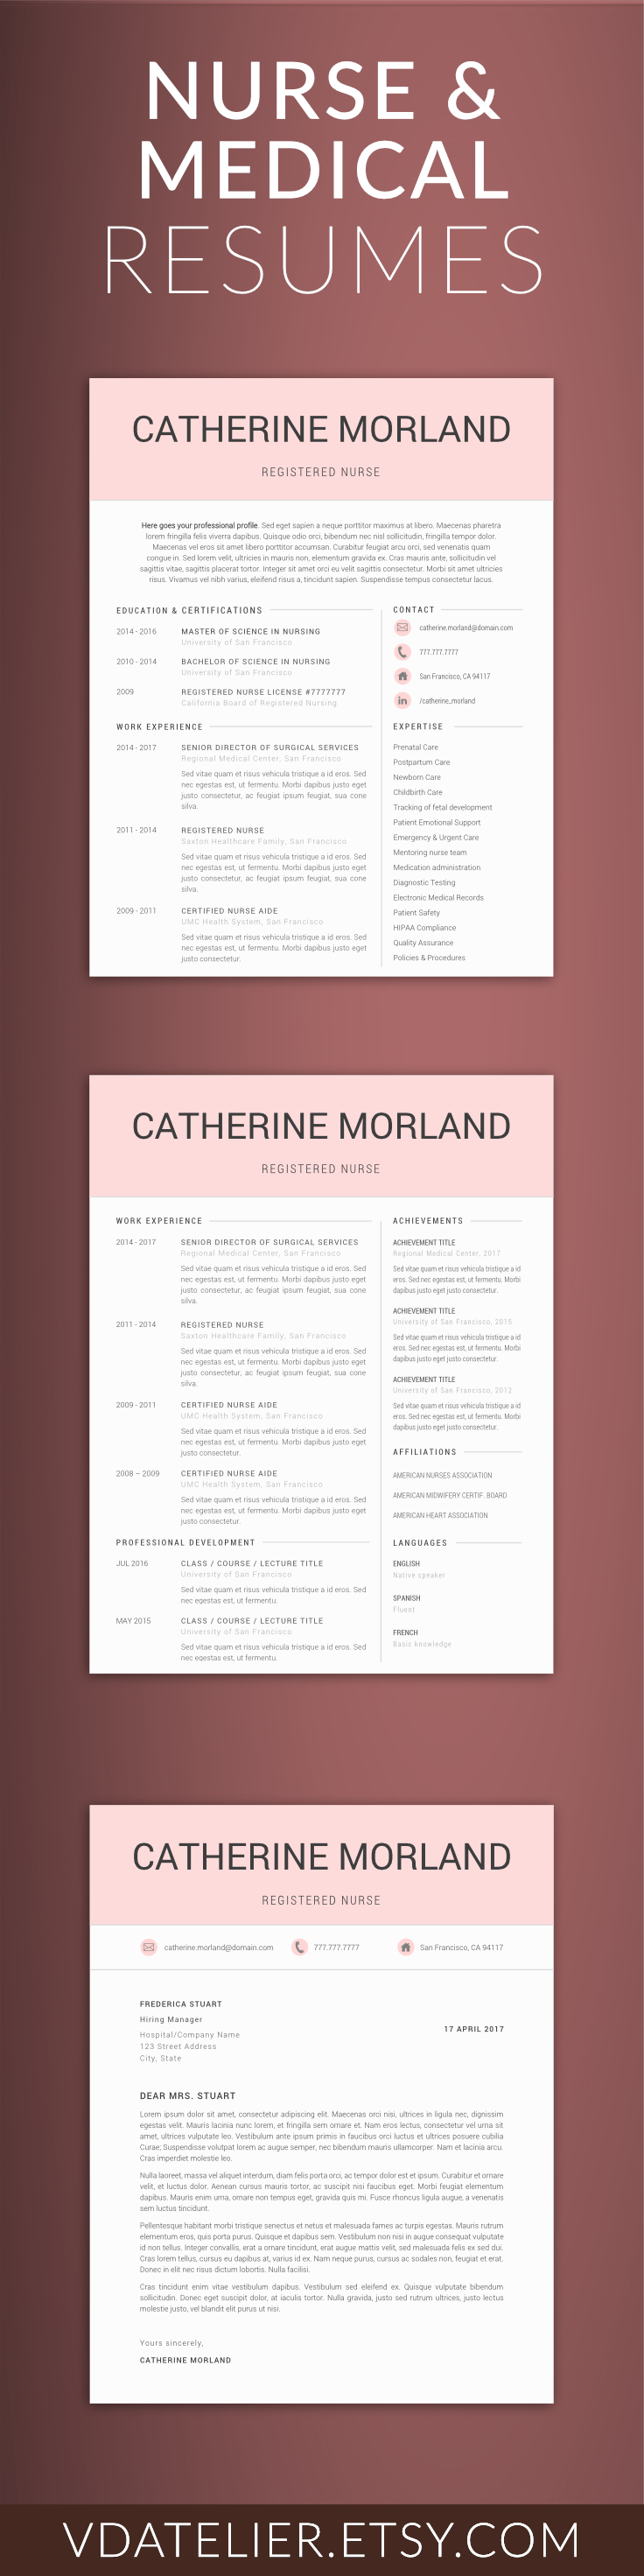 Medical Resume Word Template DoctorNurse Resume Template